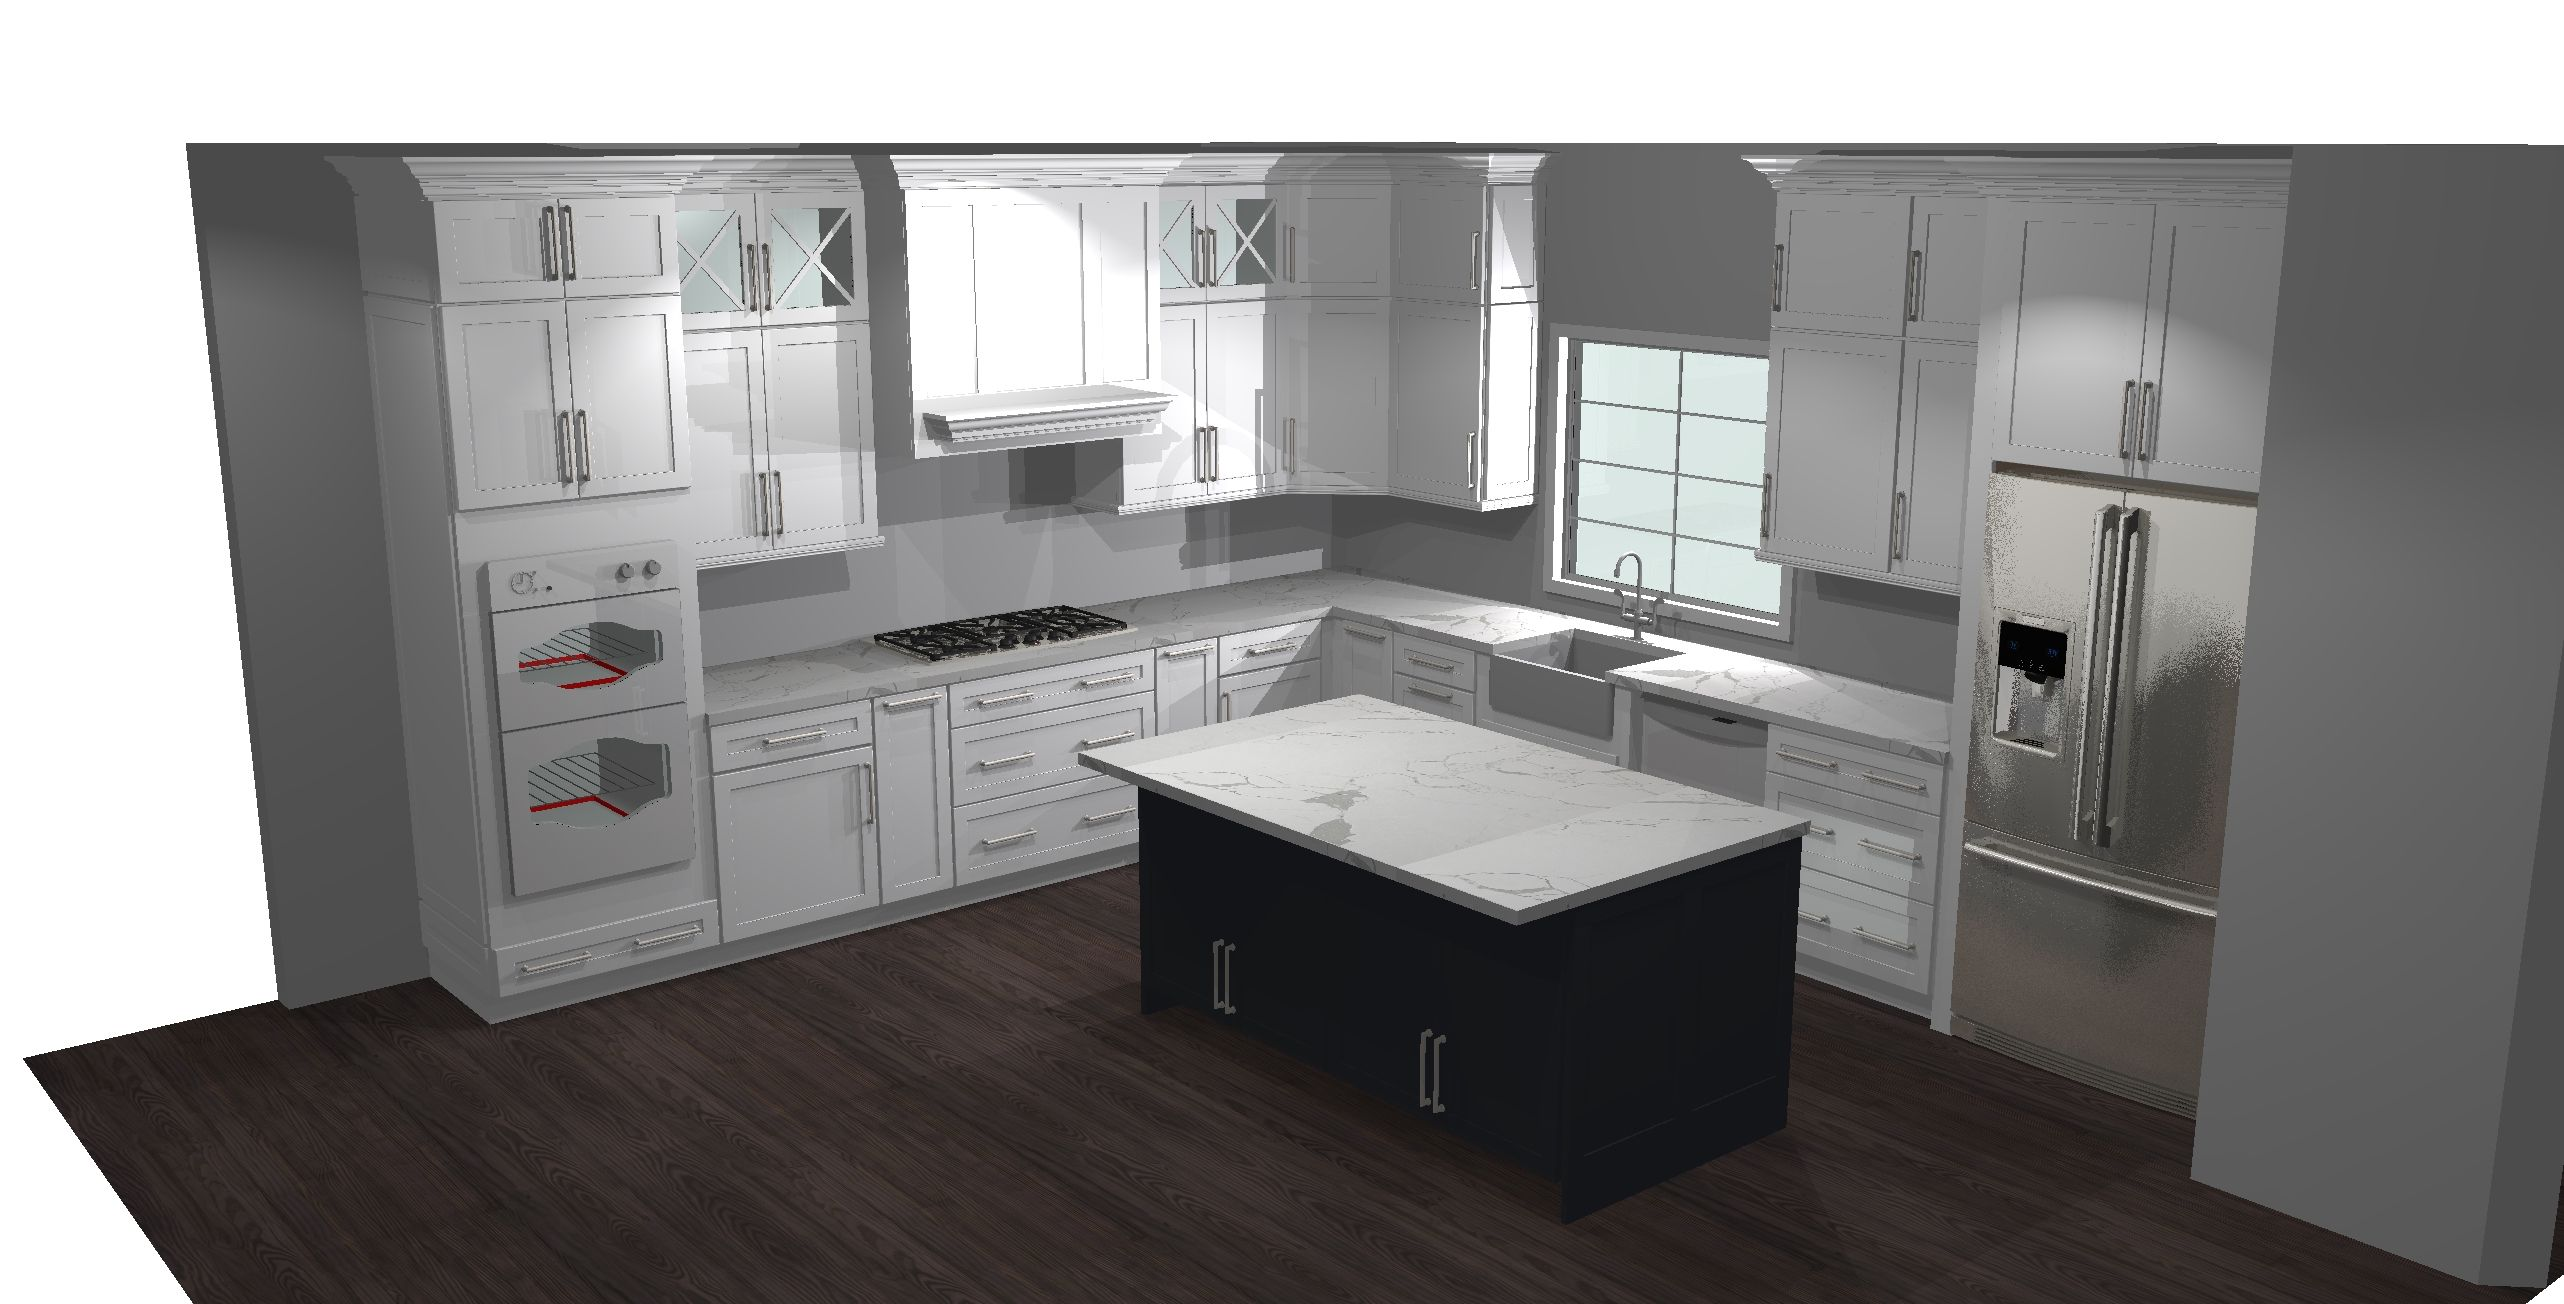 I Always Say Buying A Kitchen Should Be Like Buying Shoes You Get To Try Them On First Our Process Is Simple Kitchen Design Kitchen Remodel Custom Kitchen